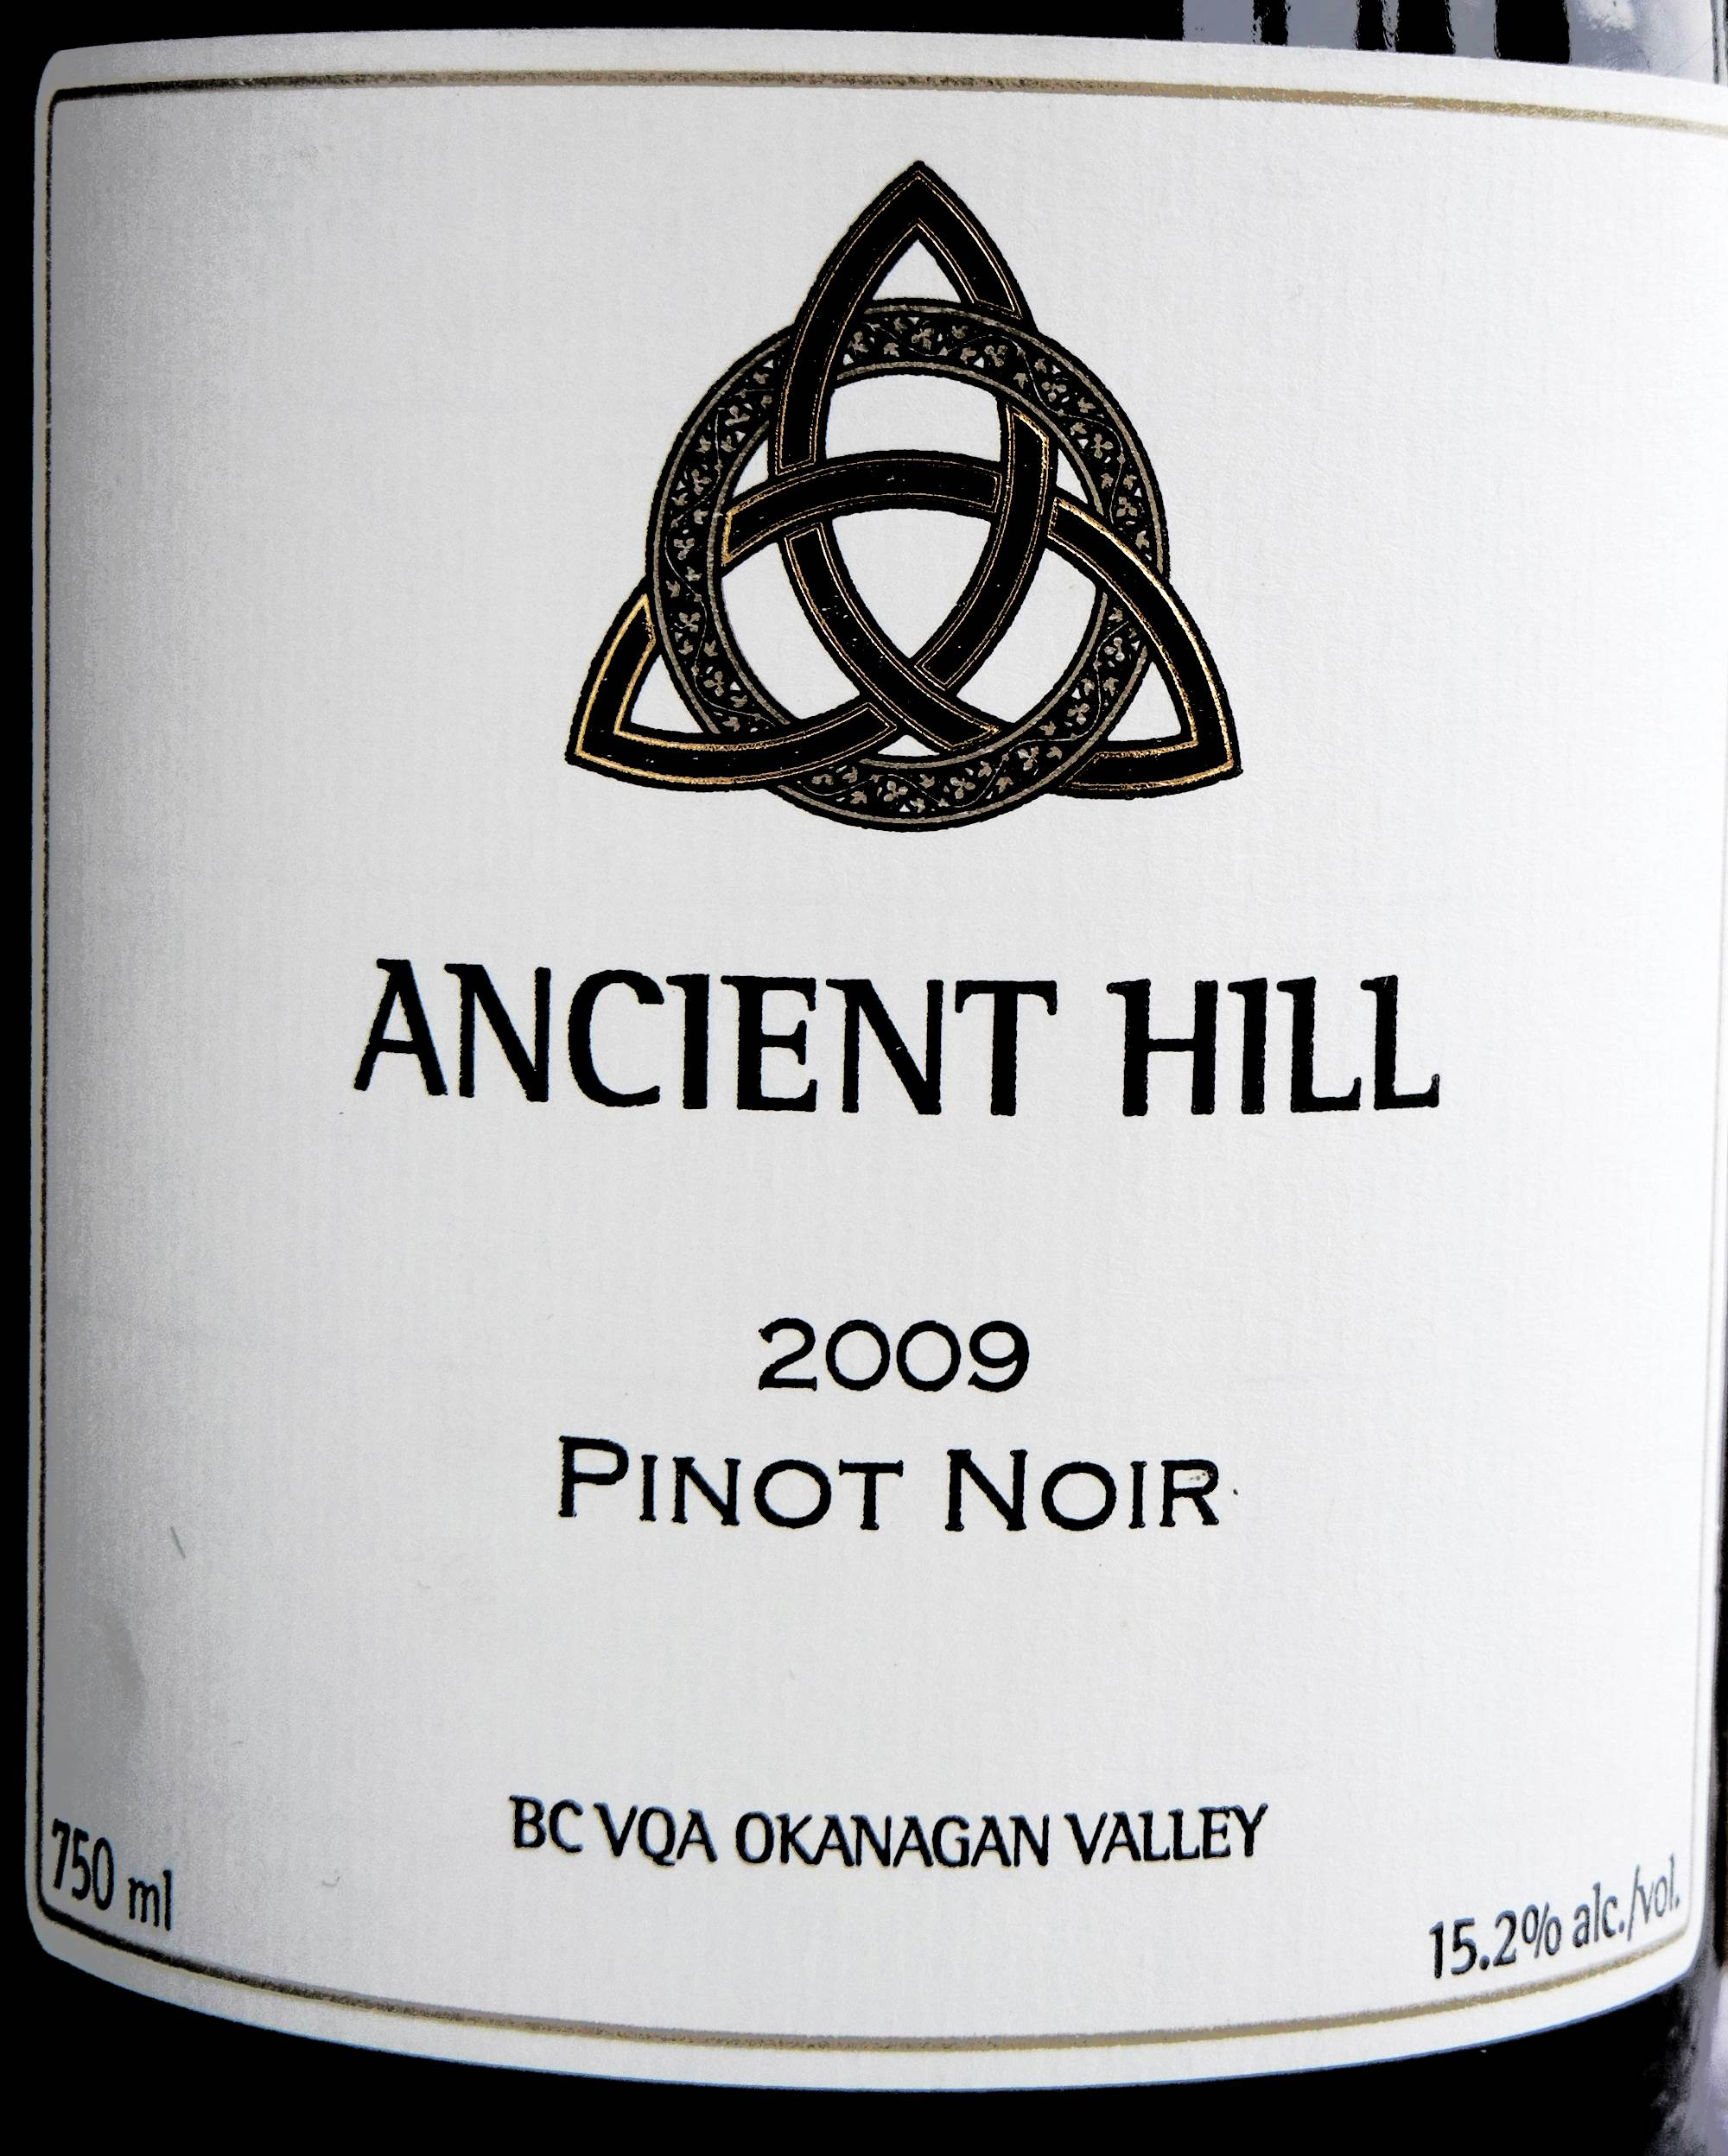 Ancient Hill Pinot Noir 2009 Label - BC Pinot Noir Tasting Review 15